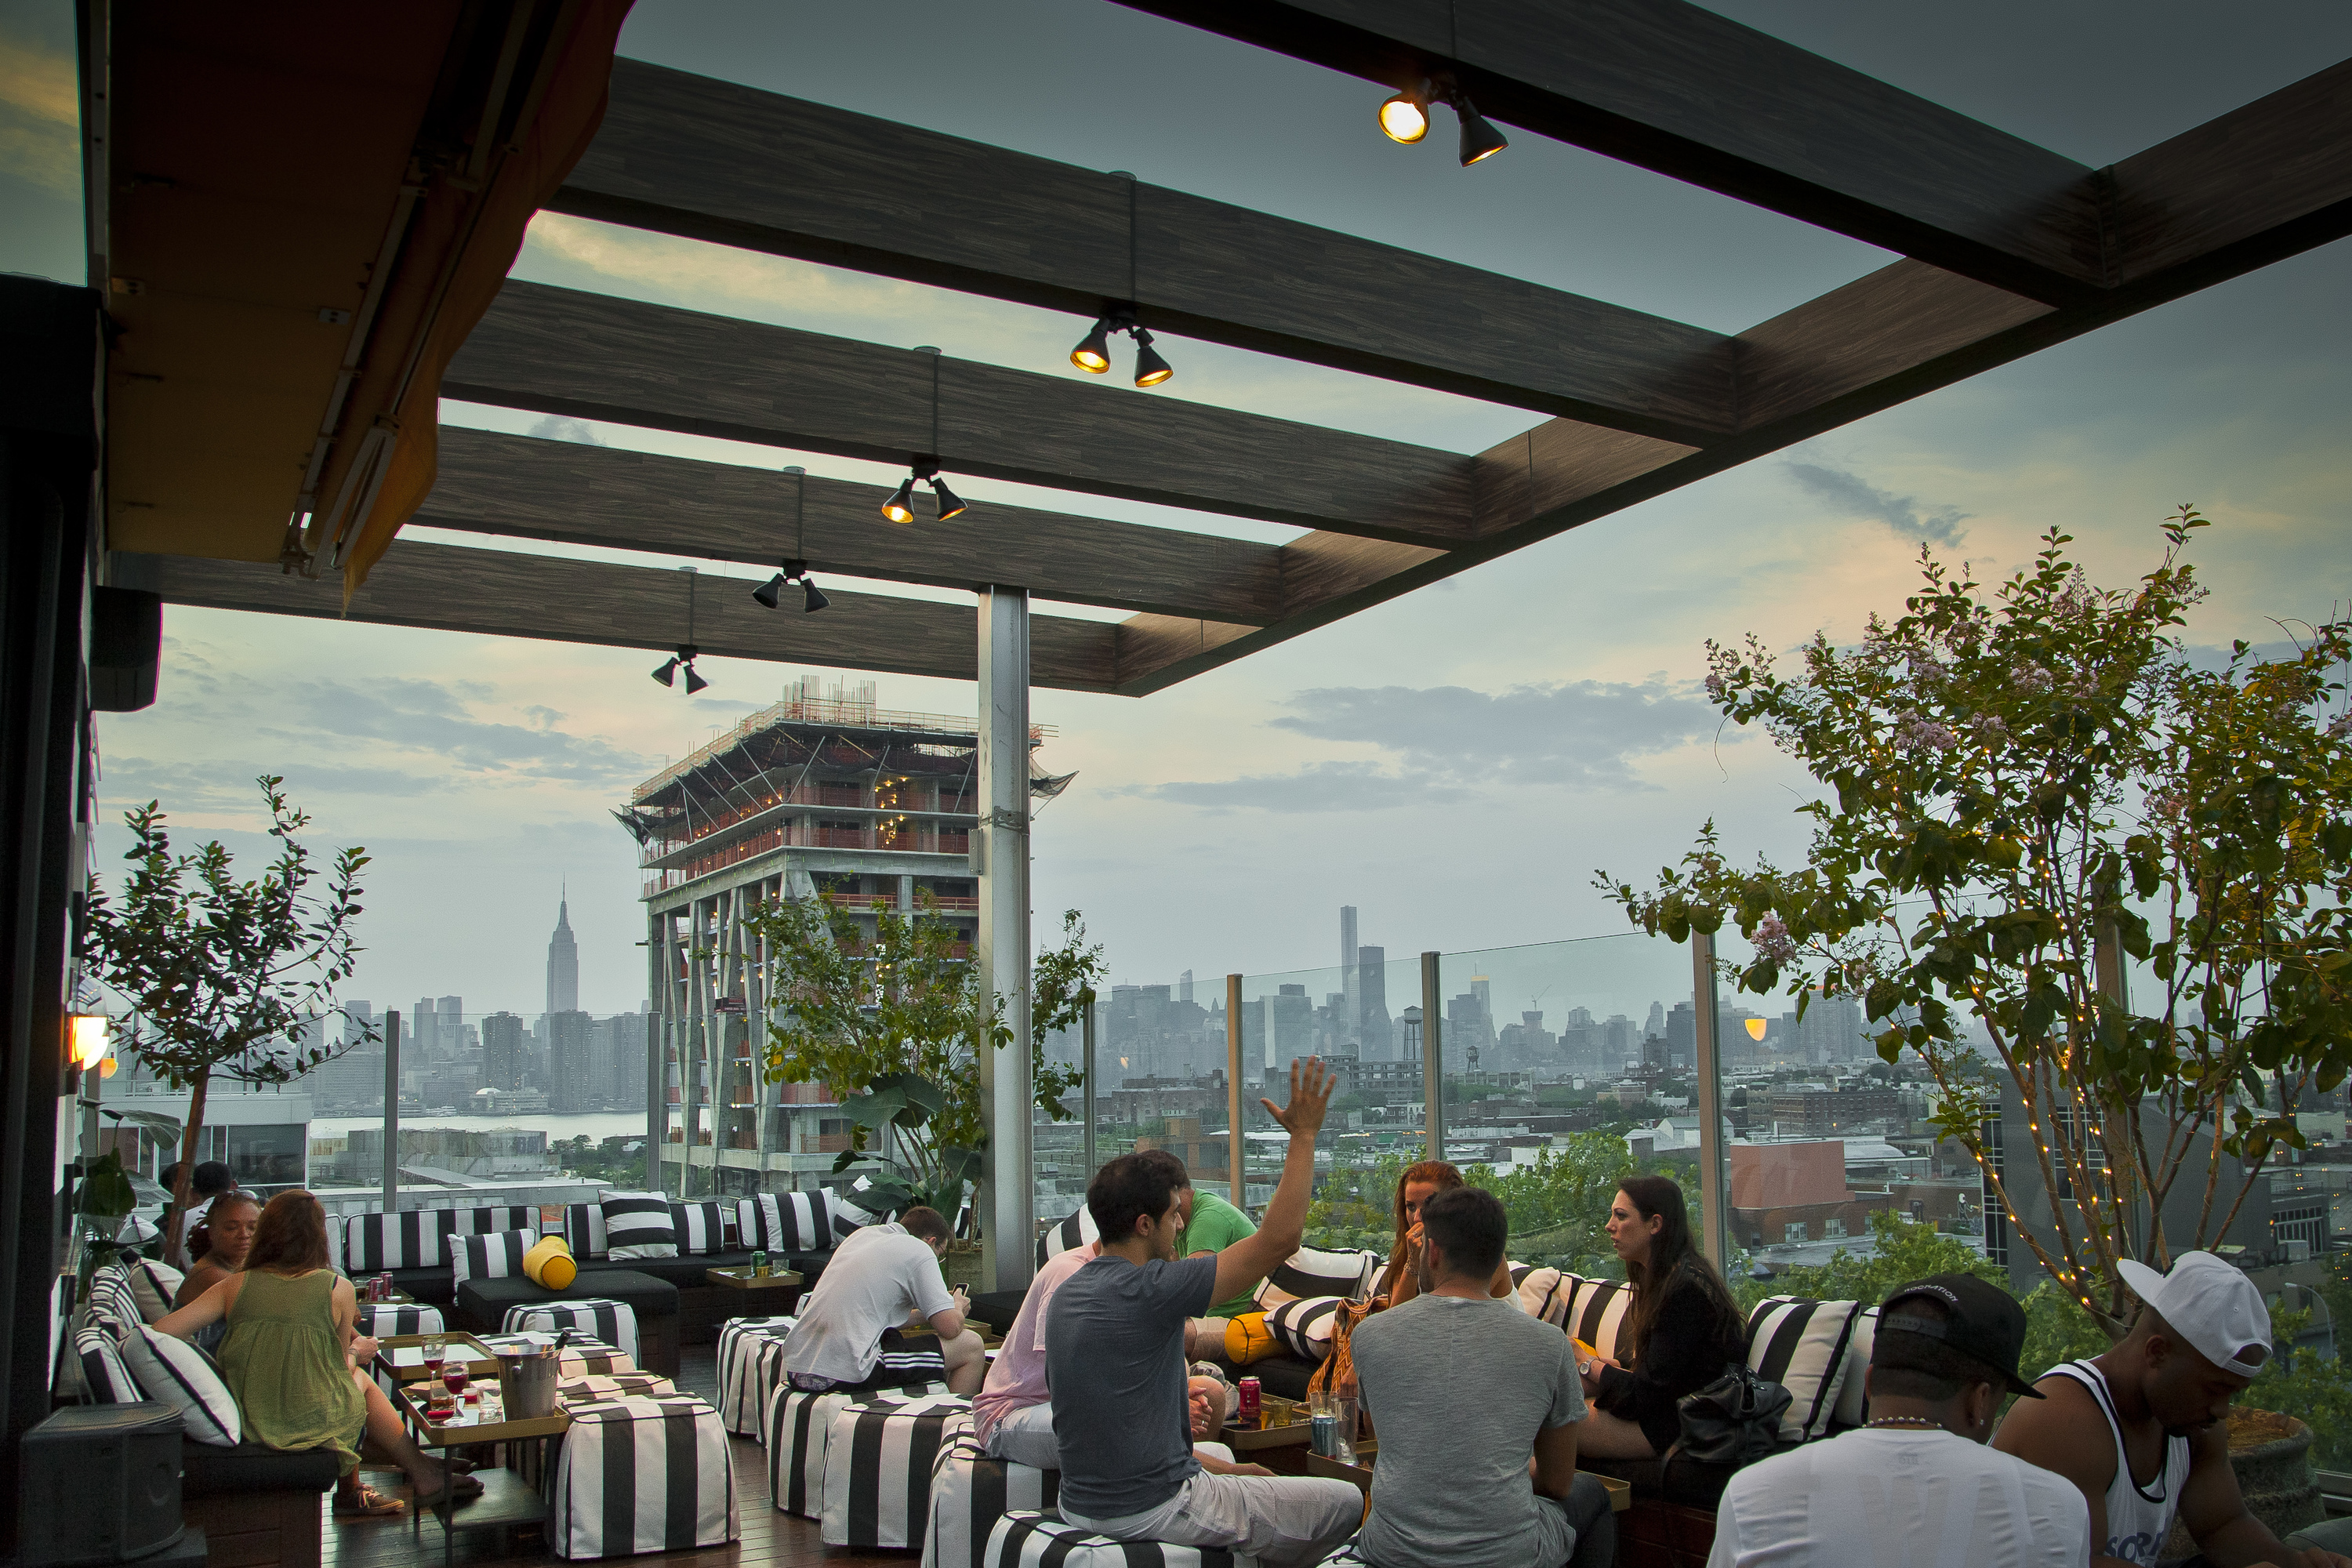 Check out the best rooftop bars in NYCEnjoy mile high meals at the best rooftop restaurants in NYC. Good Restaurants Nyc For Groups. Home Design Ideas